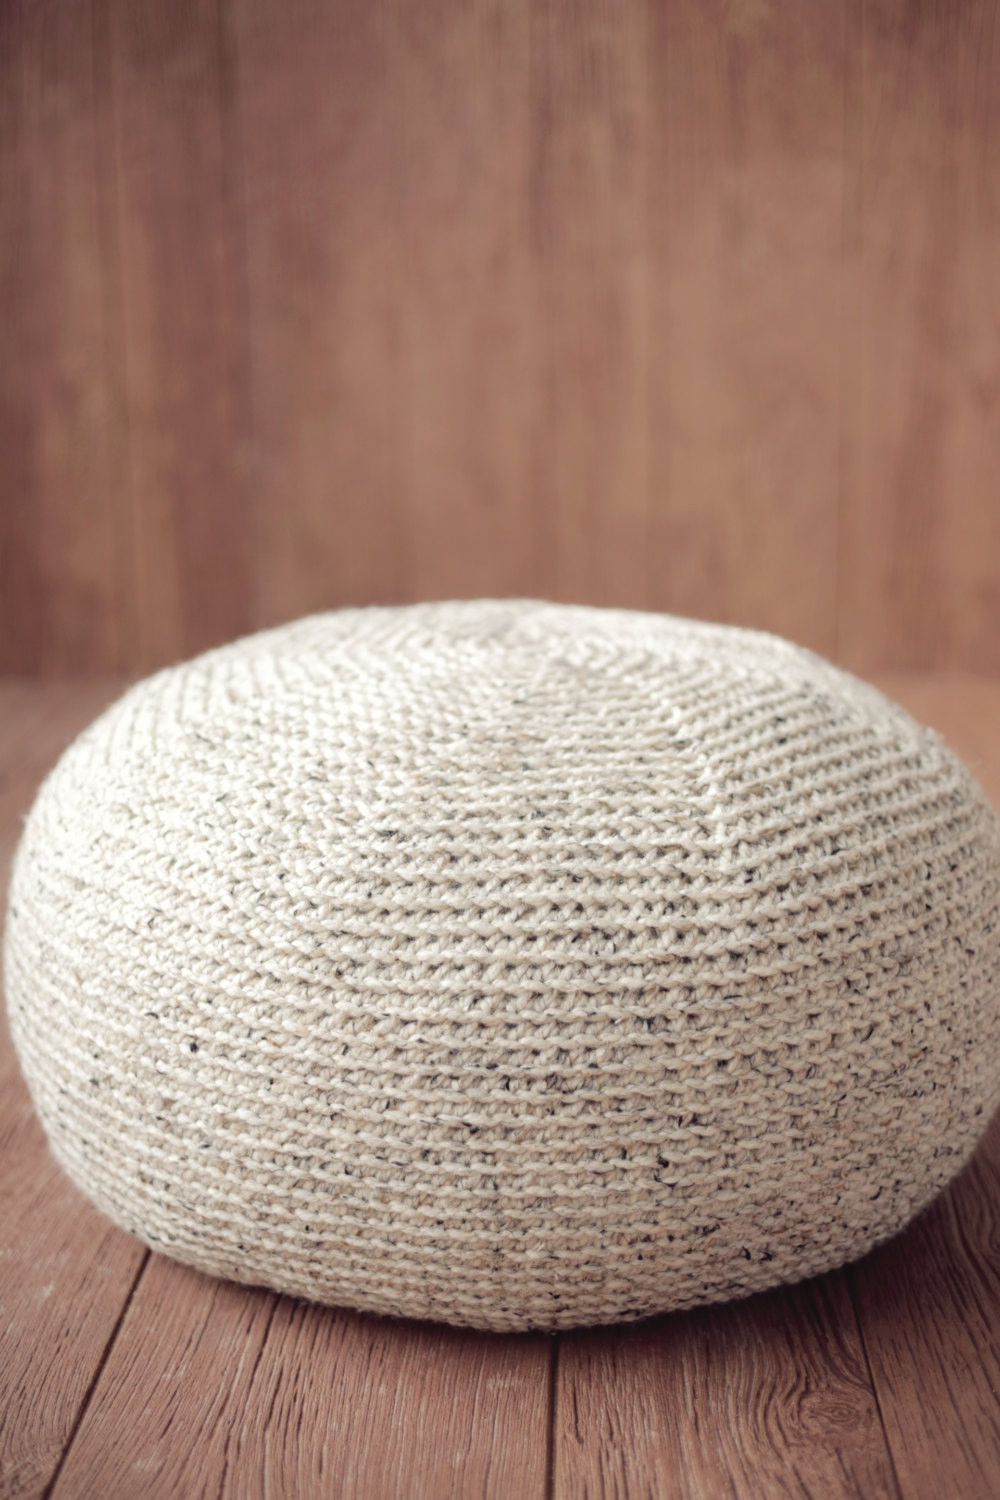 Crochet Ottoman Beautiful Crochet Pattern Knit Pouf Pillow Ottoman Cushion Of Incredible 42 Ideas Crochet Ottoman